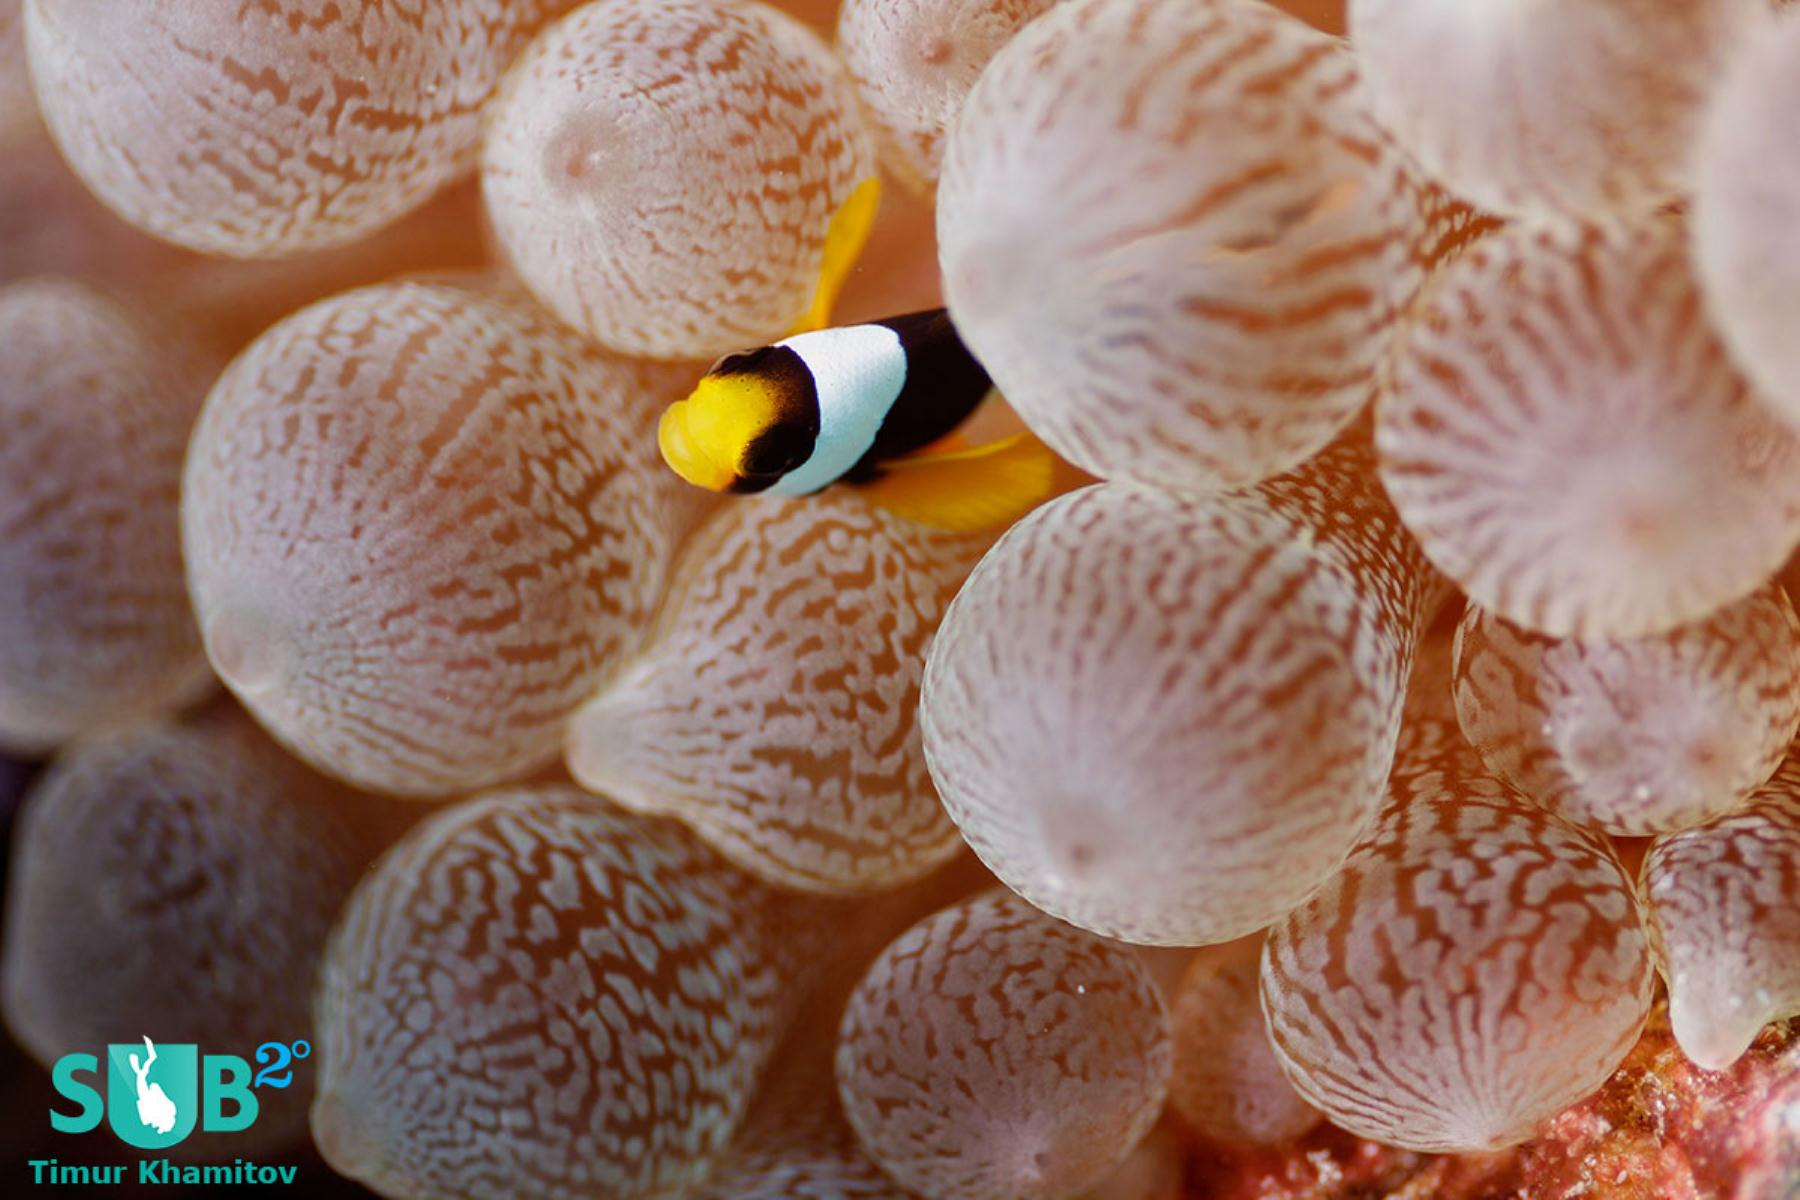 Cute little clownfish looking out at me.